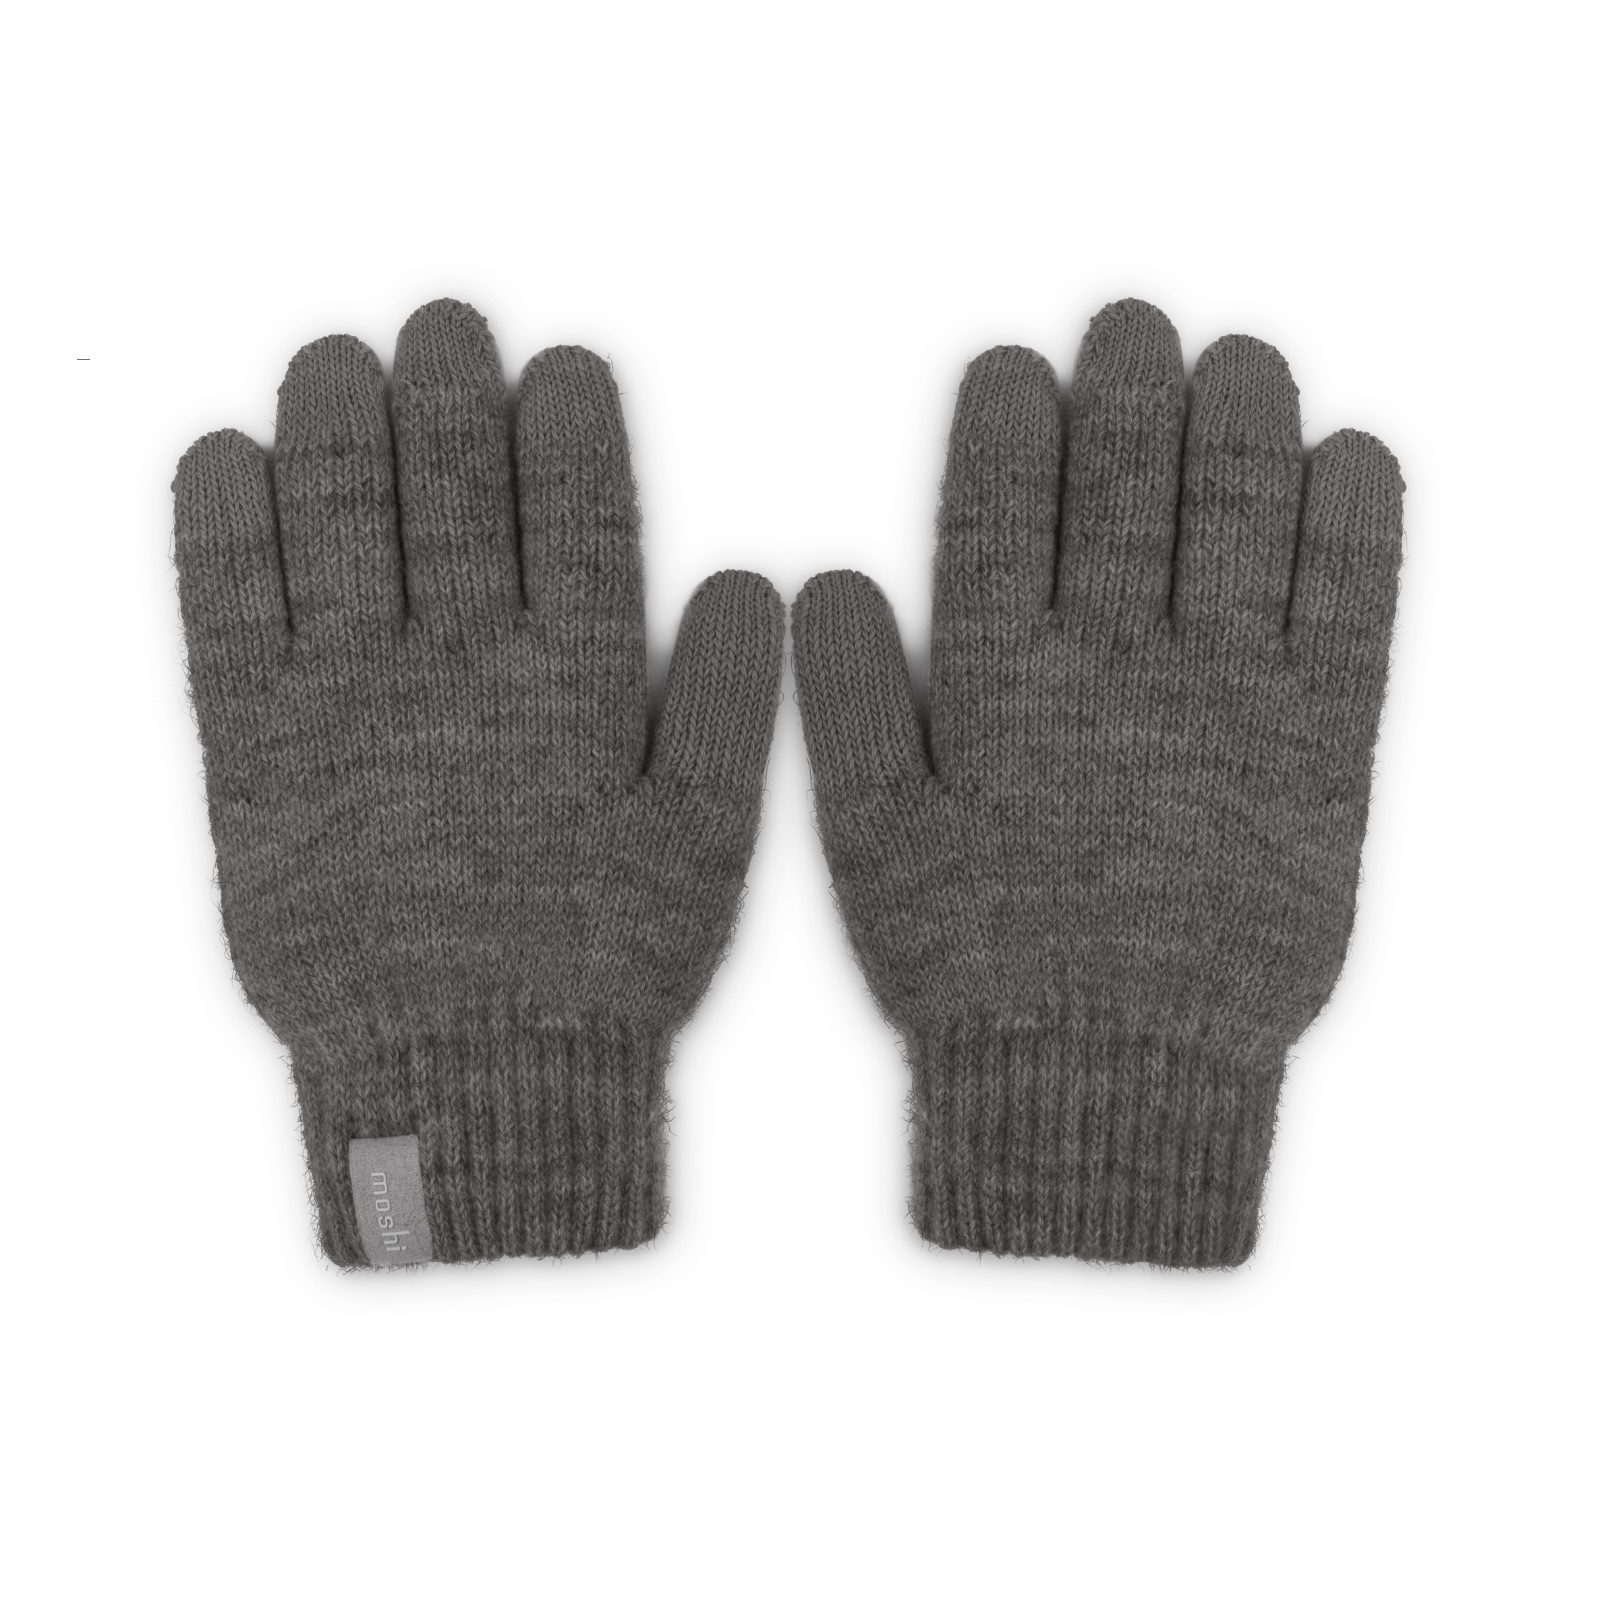 Digits Touchscreen Gloves-image